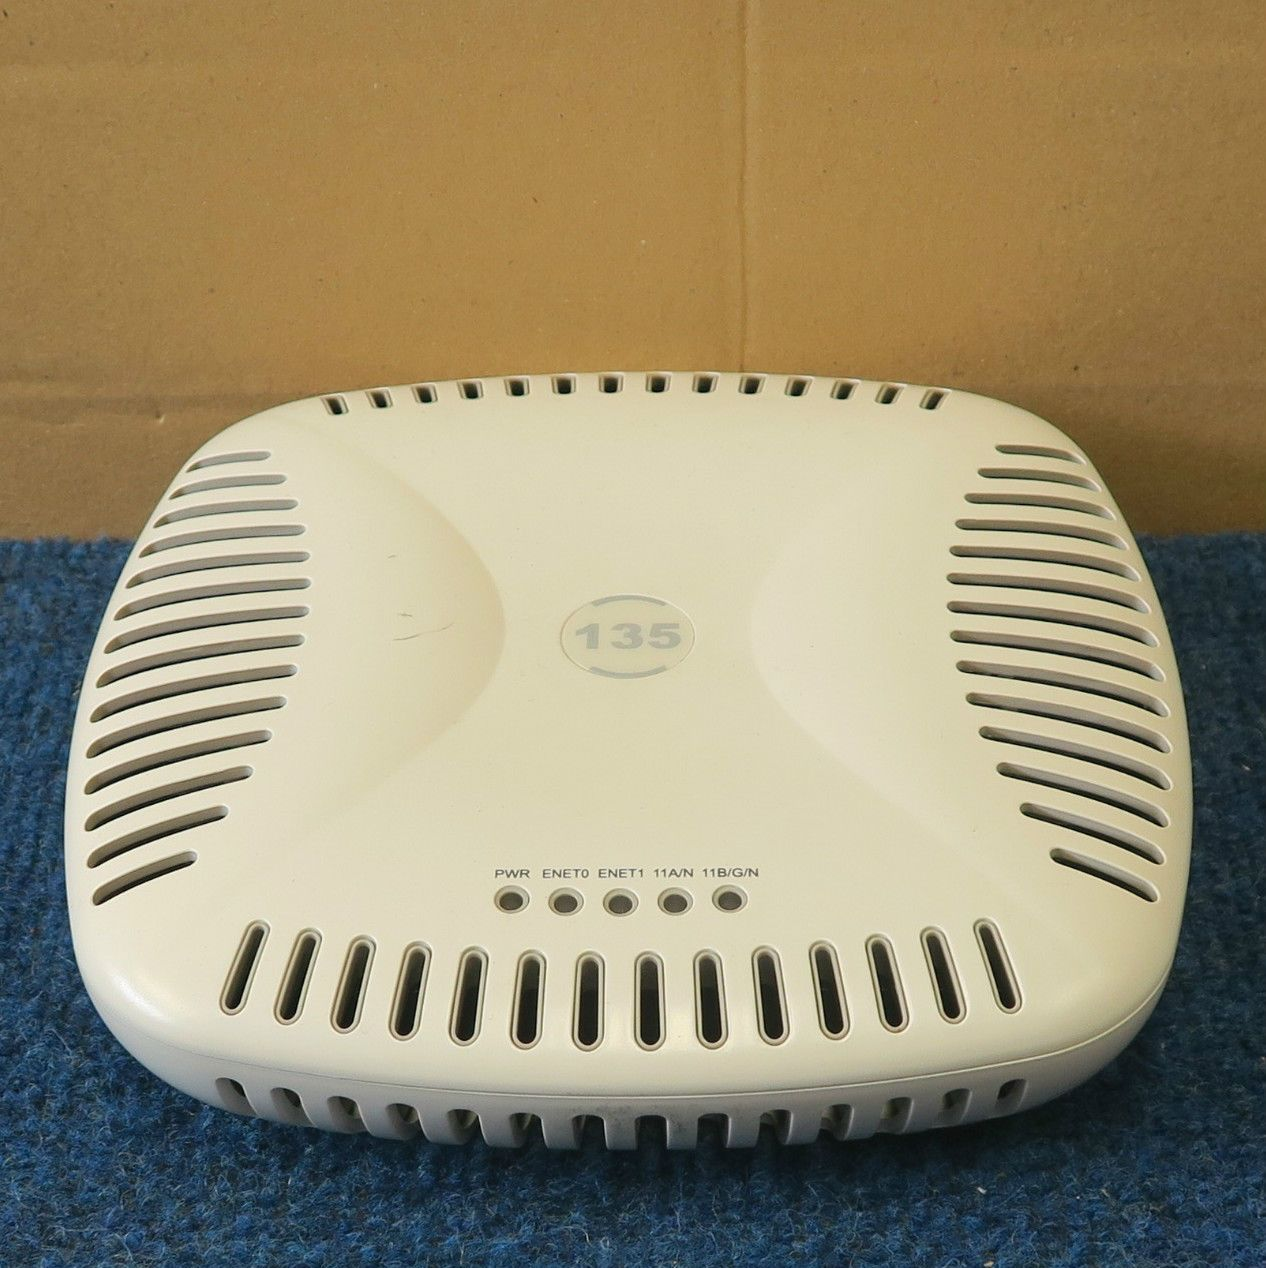 Aruba AP-135 - 5GHz 2 4GHz 802 11n Dual Band Wi-Fi Wireless Access Point